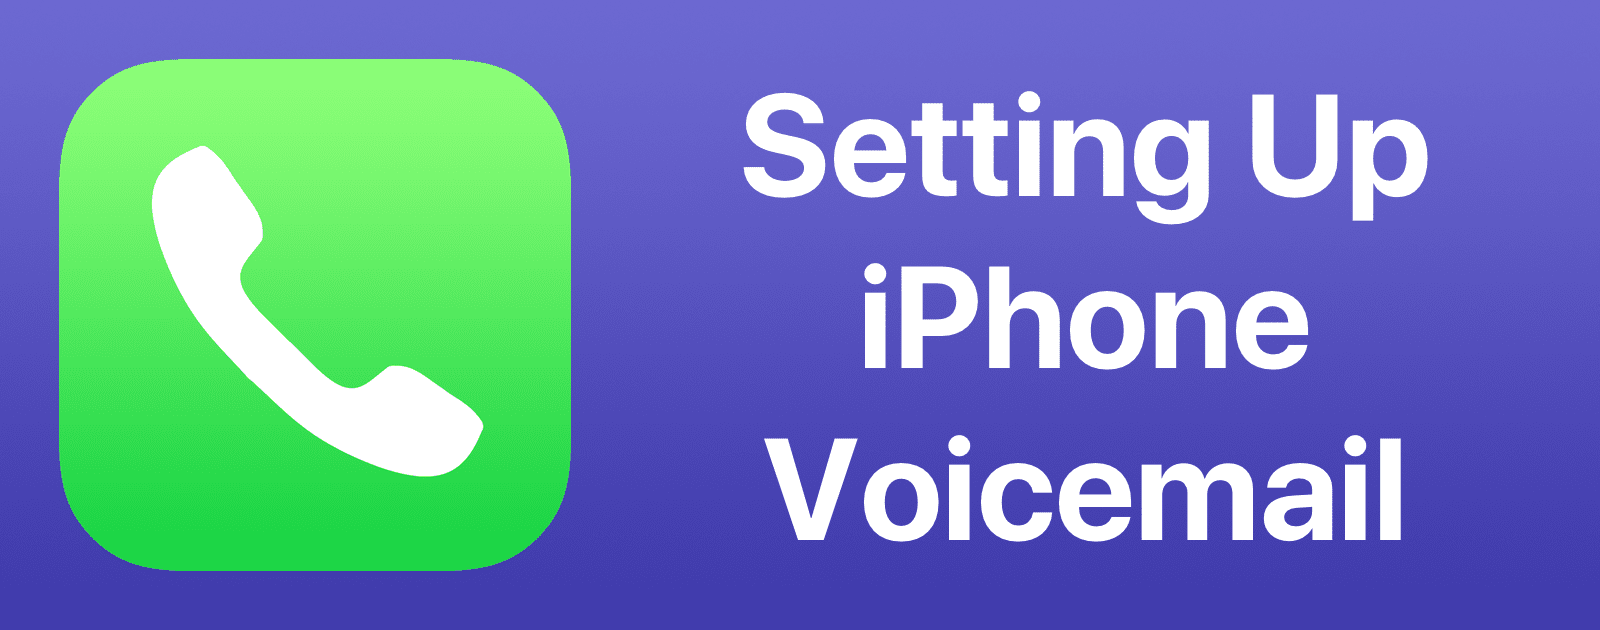 Ios Here Is How To Set Up Iphone Voicemail The Mac Observer